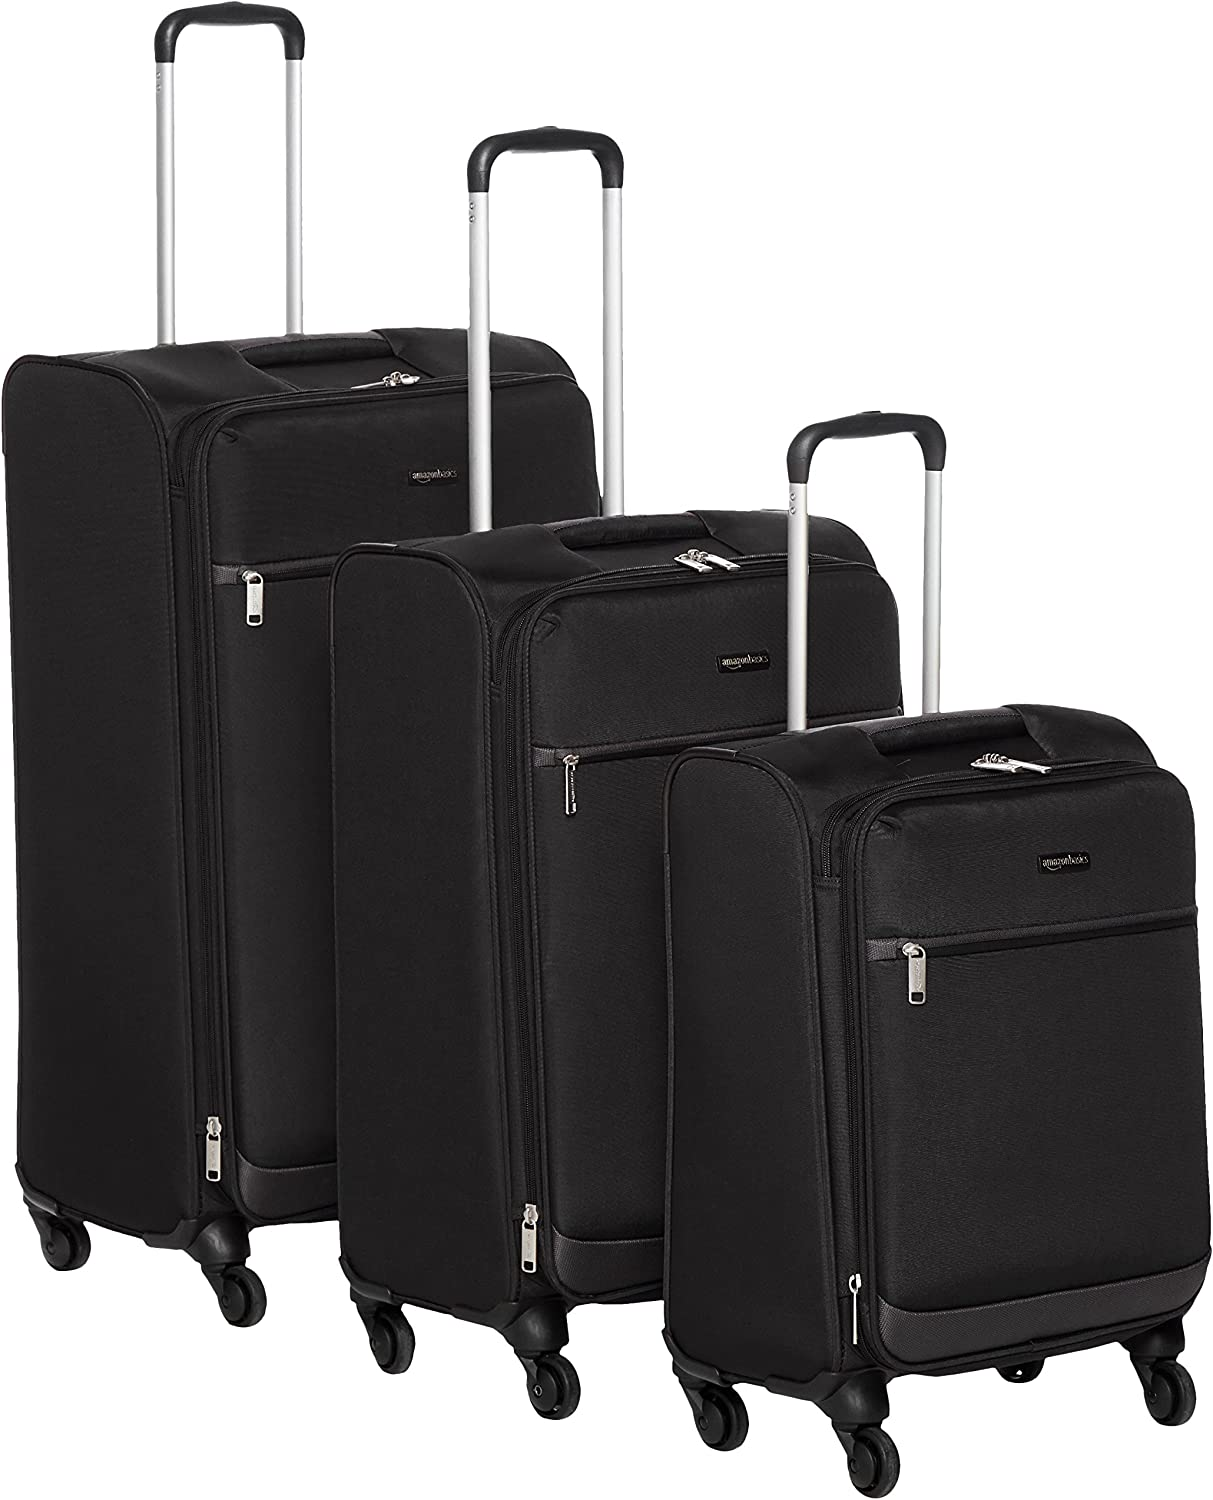 Top 7 Best Lightweight Luggage for International Travel 6